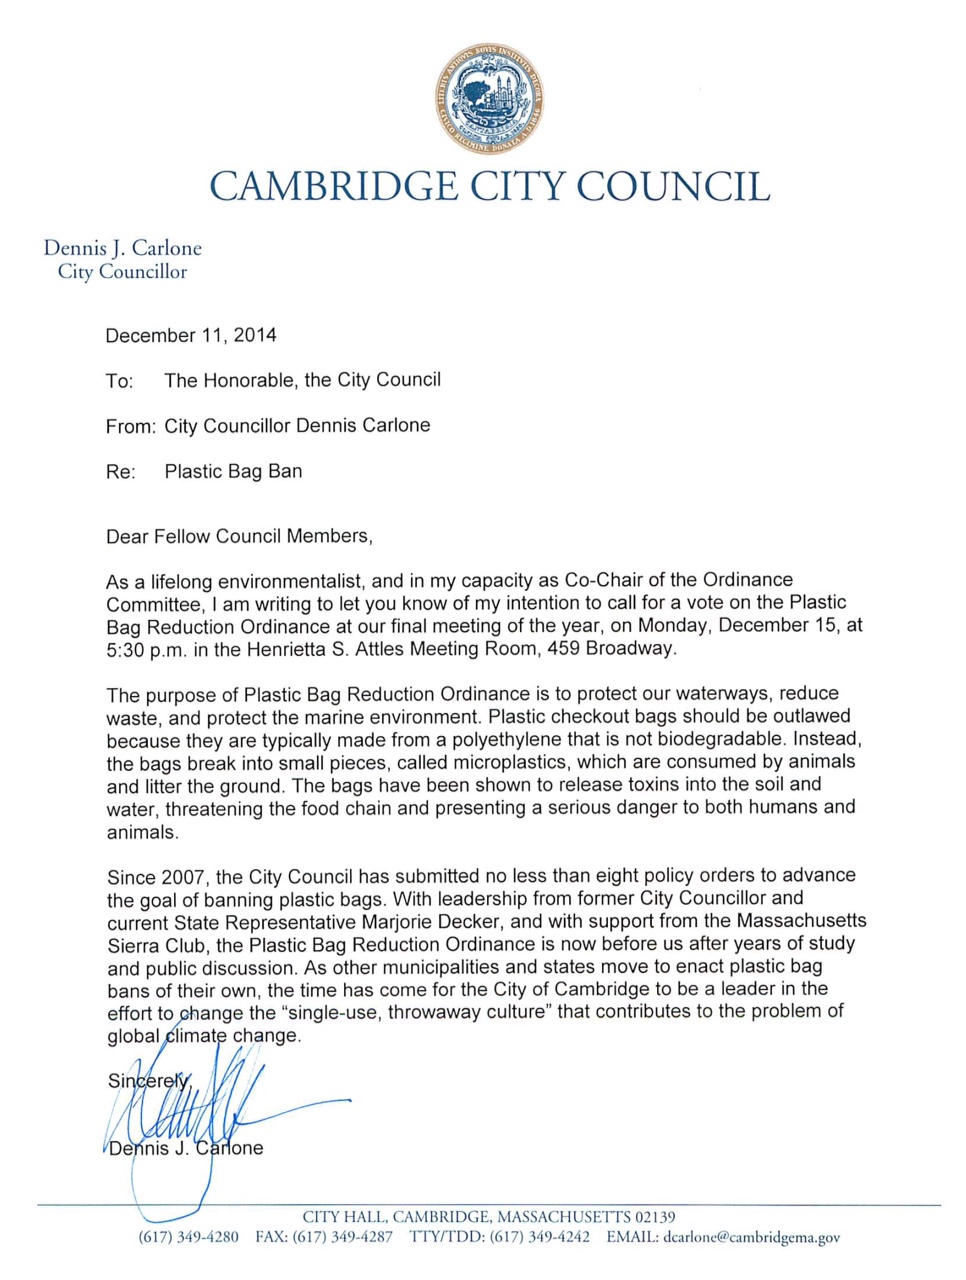 Dennis_Carlone_Plastic_Bag_Ban_Cambridge_city_council_letter.jpg